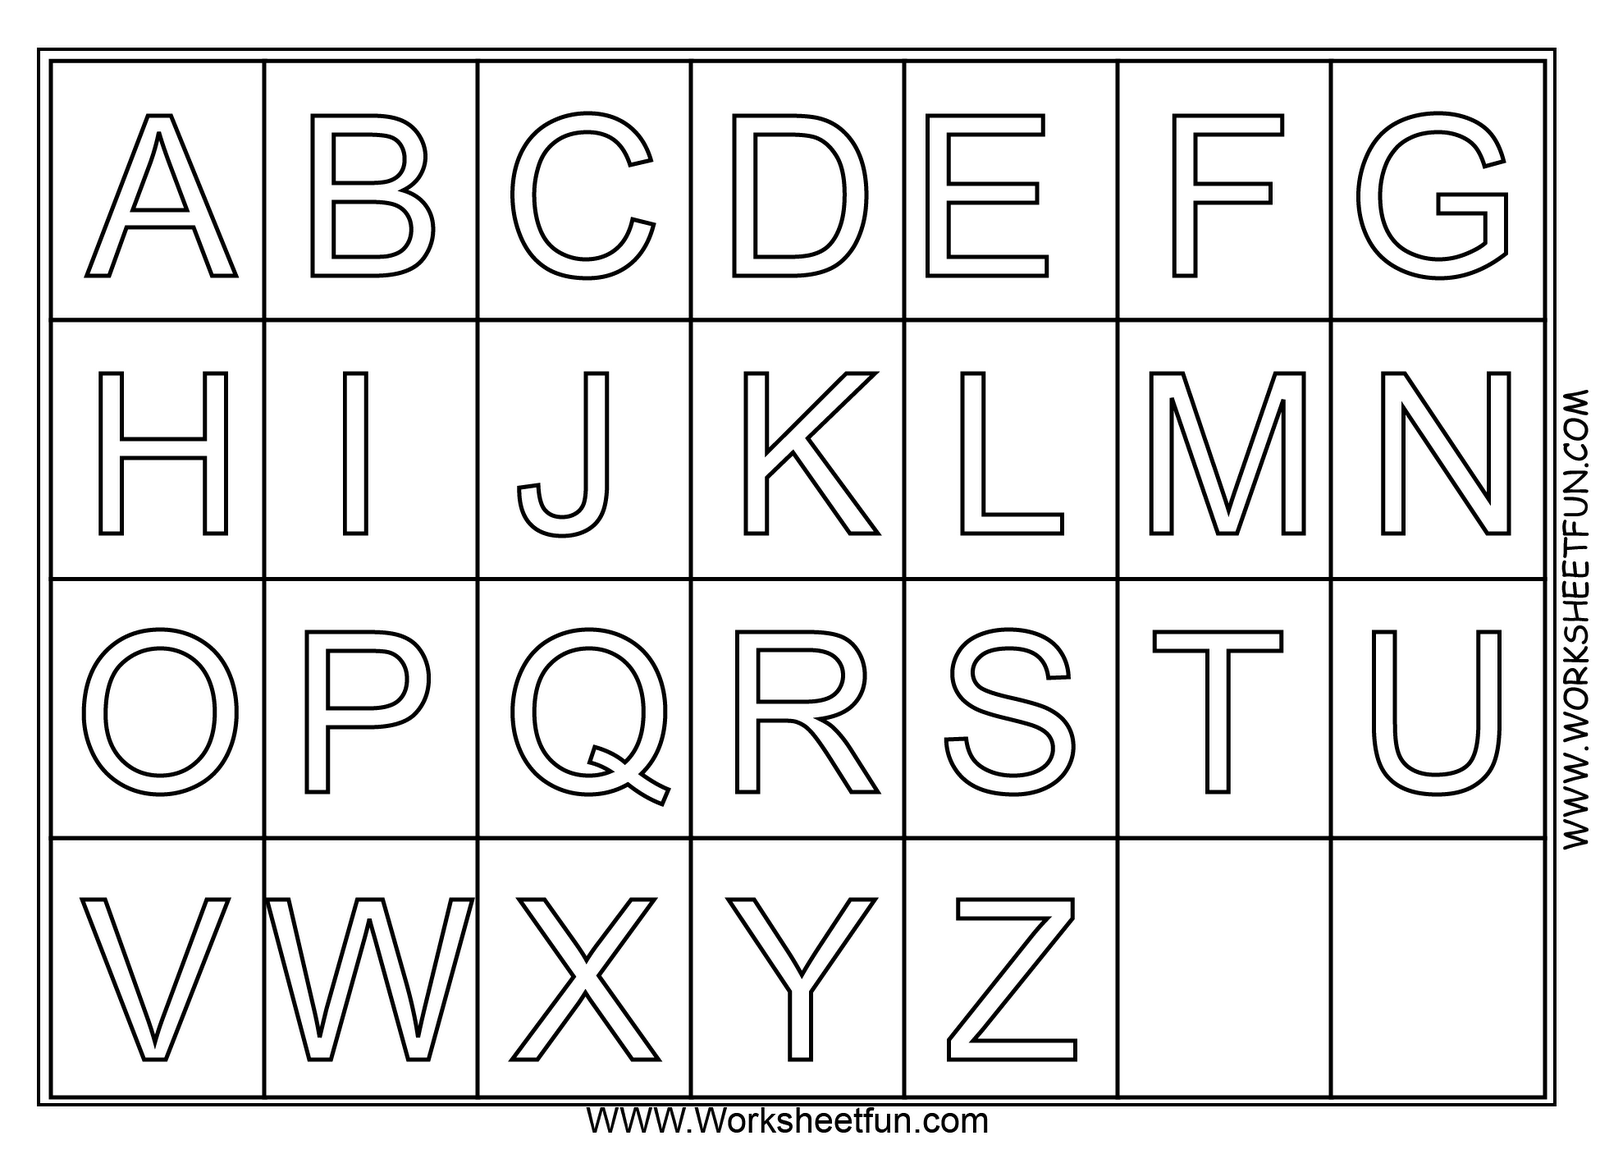 Worksheet Nursery Alphabet Worksheets coloring worksheets and on pinterest